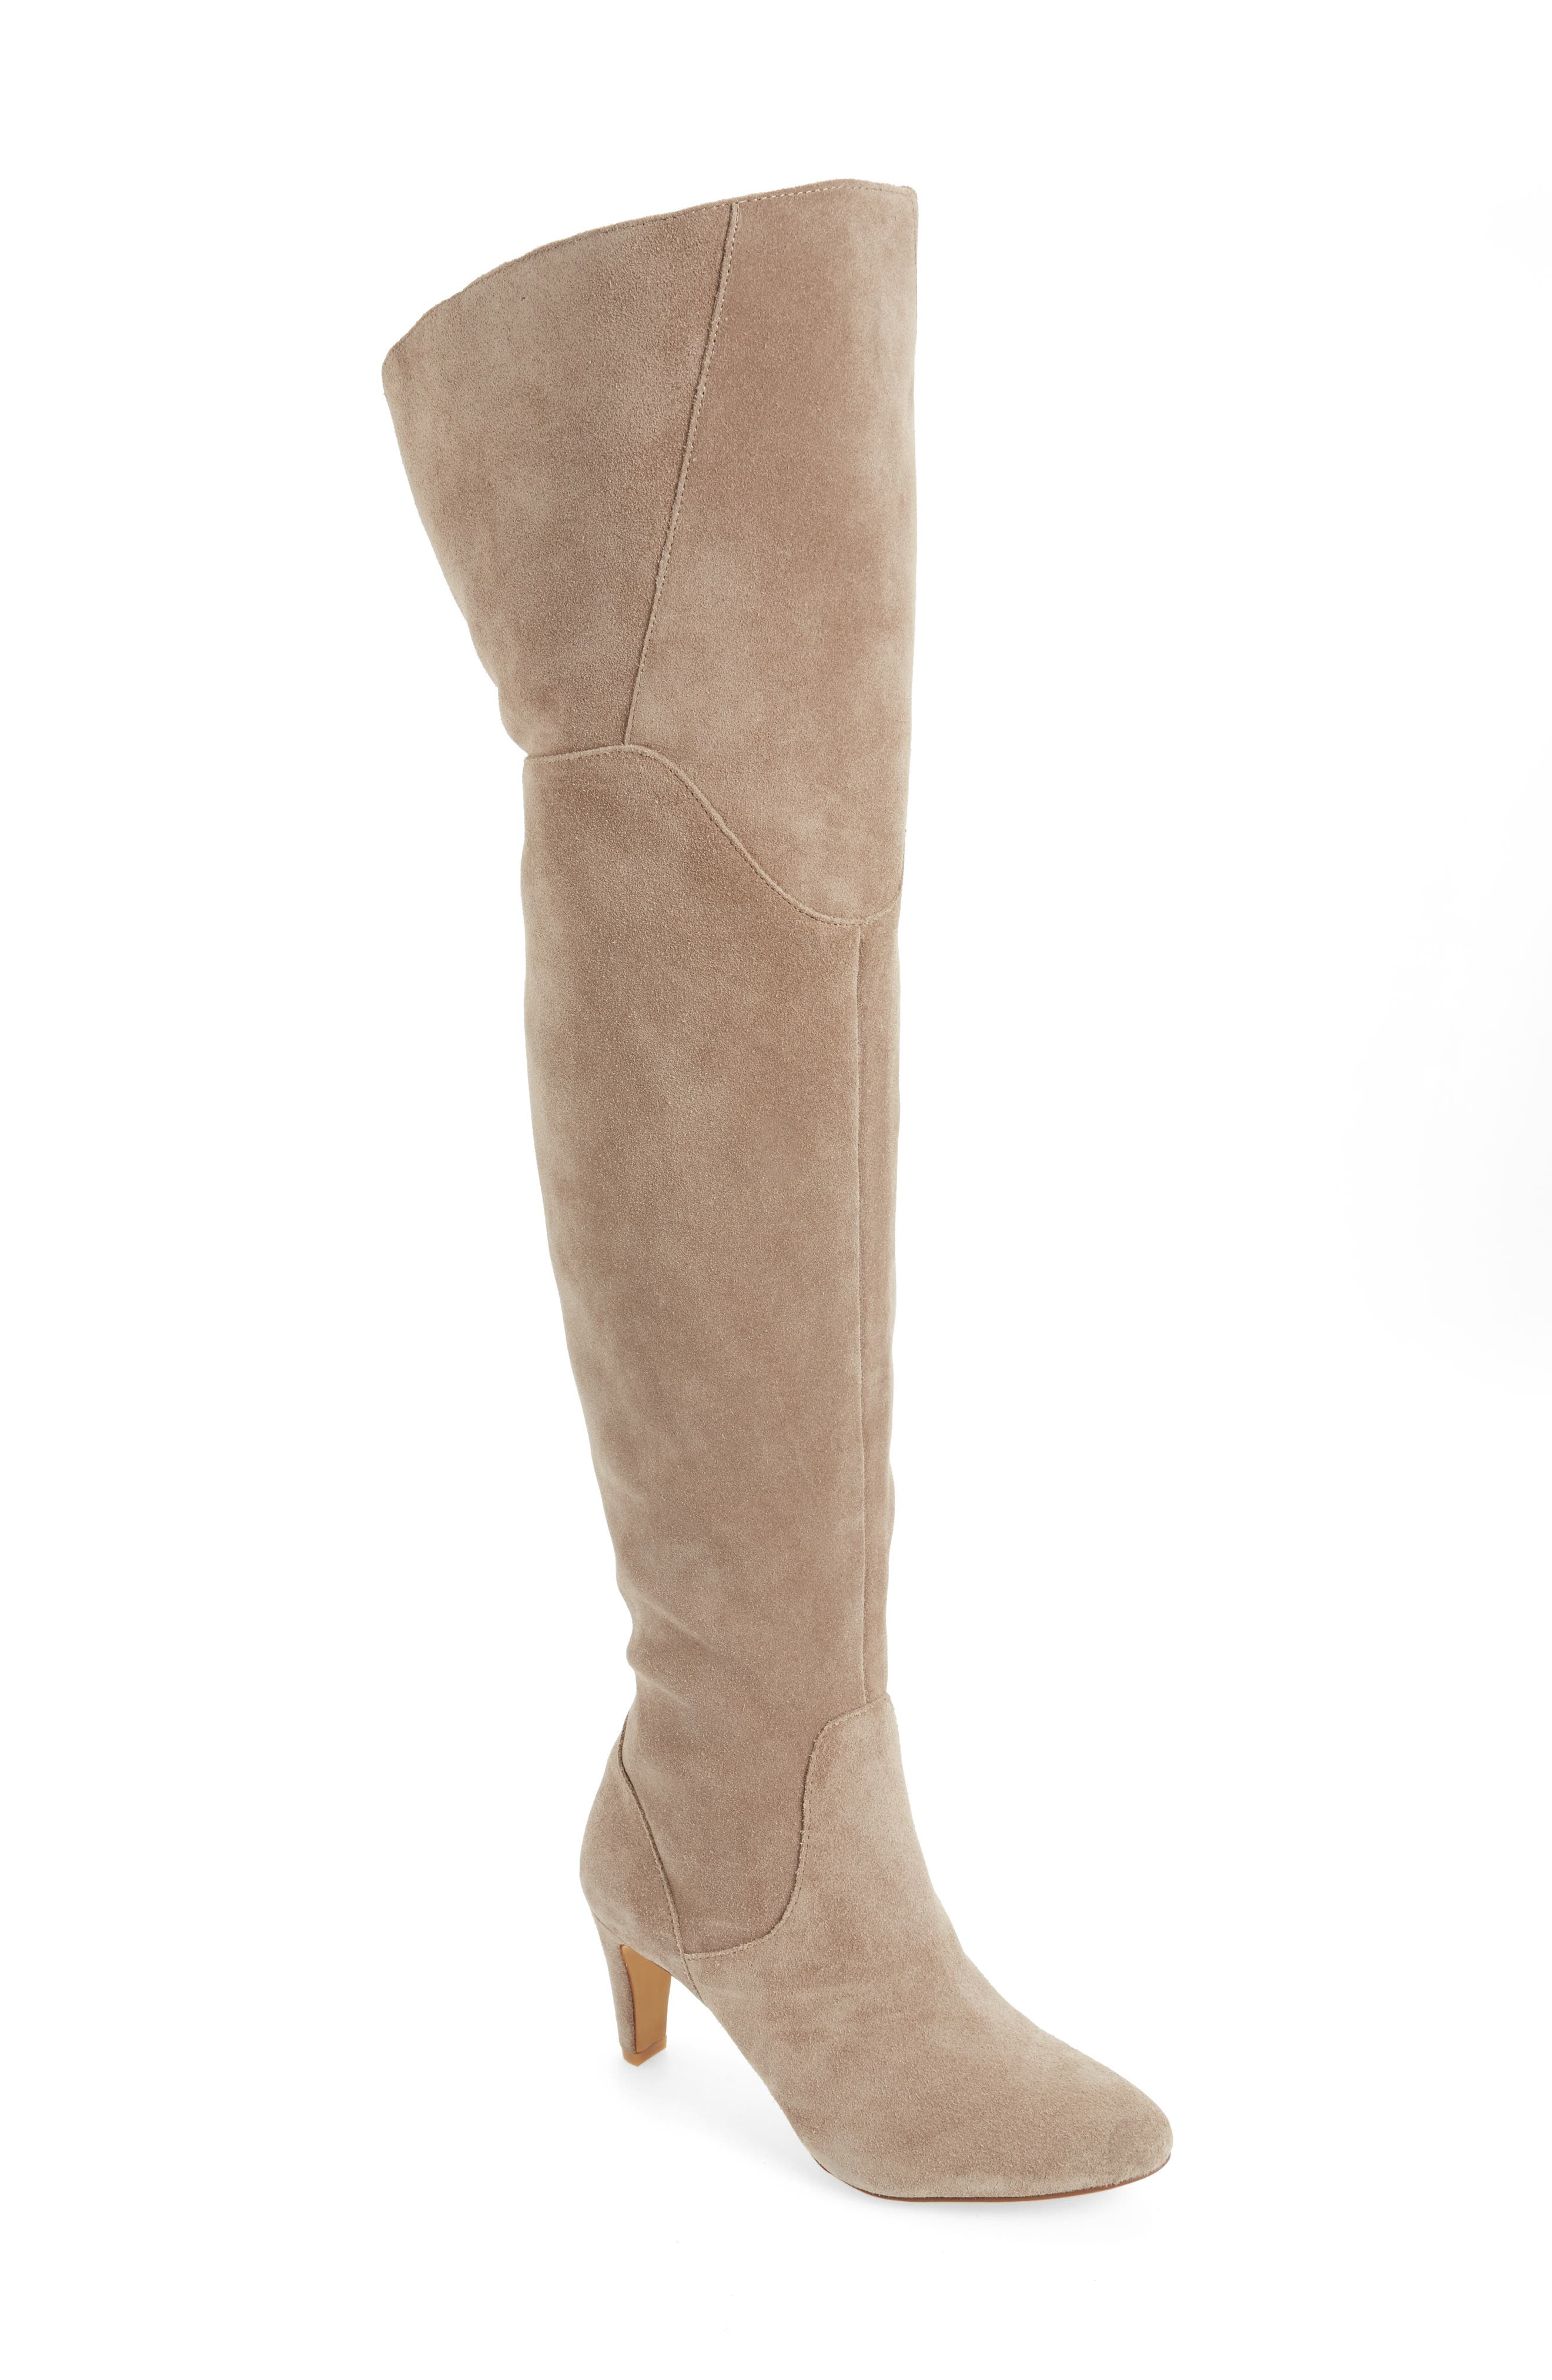 Main Image - Vince Camuto Armaceli Over the Knee Boot (Women)